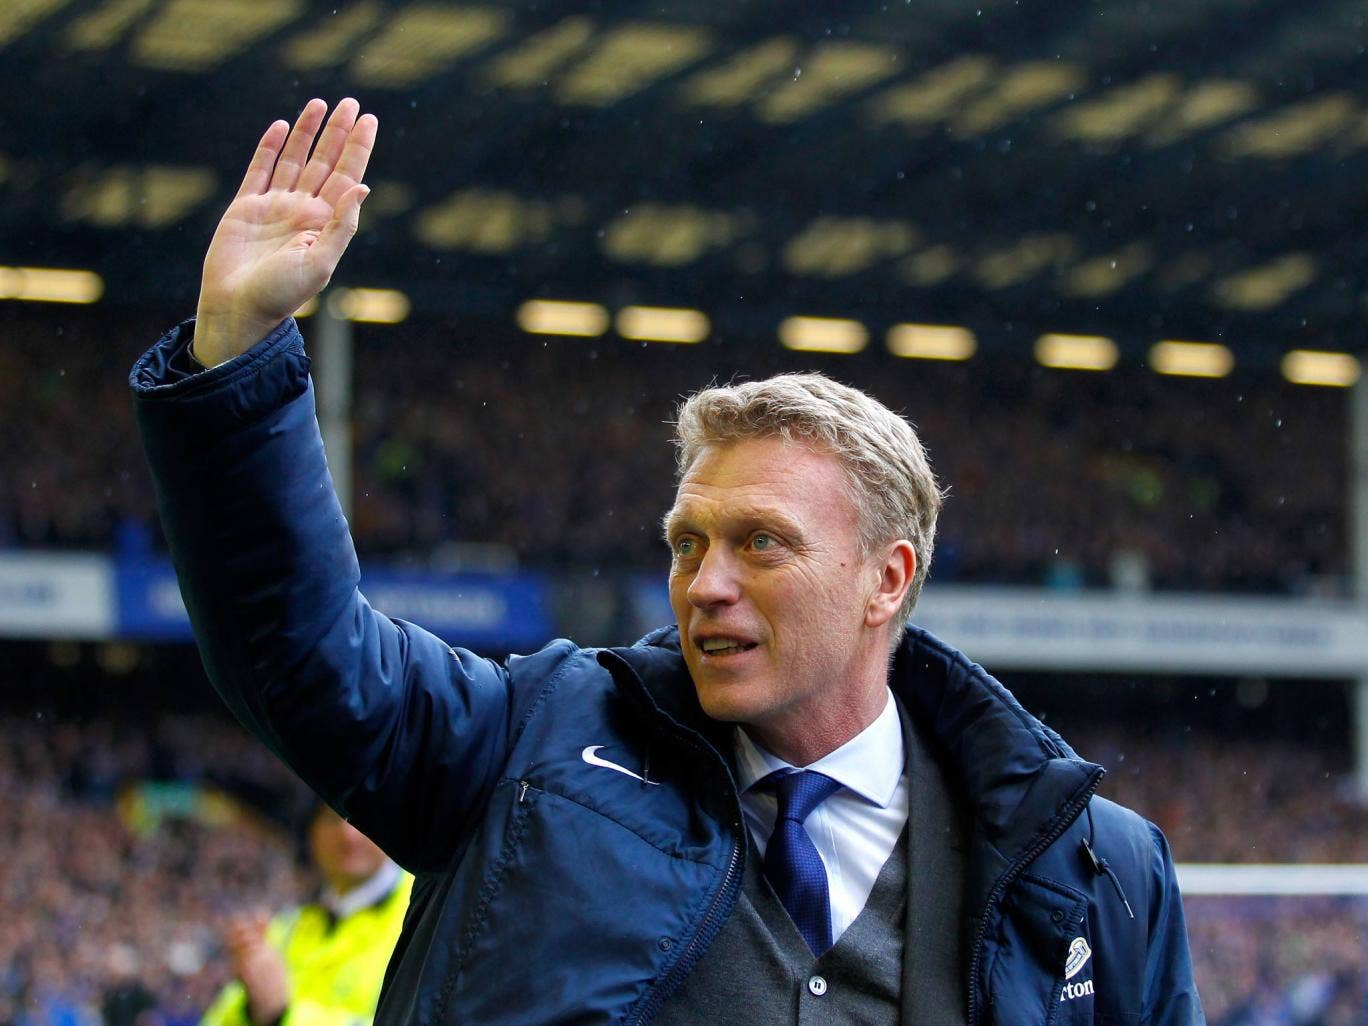 David Moyes waves goodbye to the Everton fans in his final game as Everton boss at Goodison Park